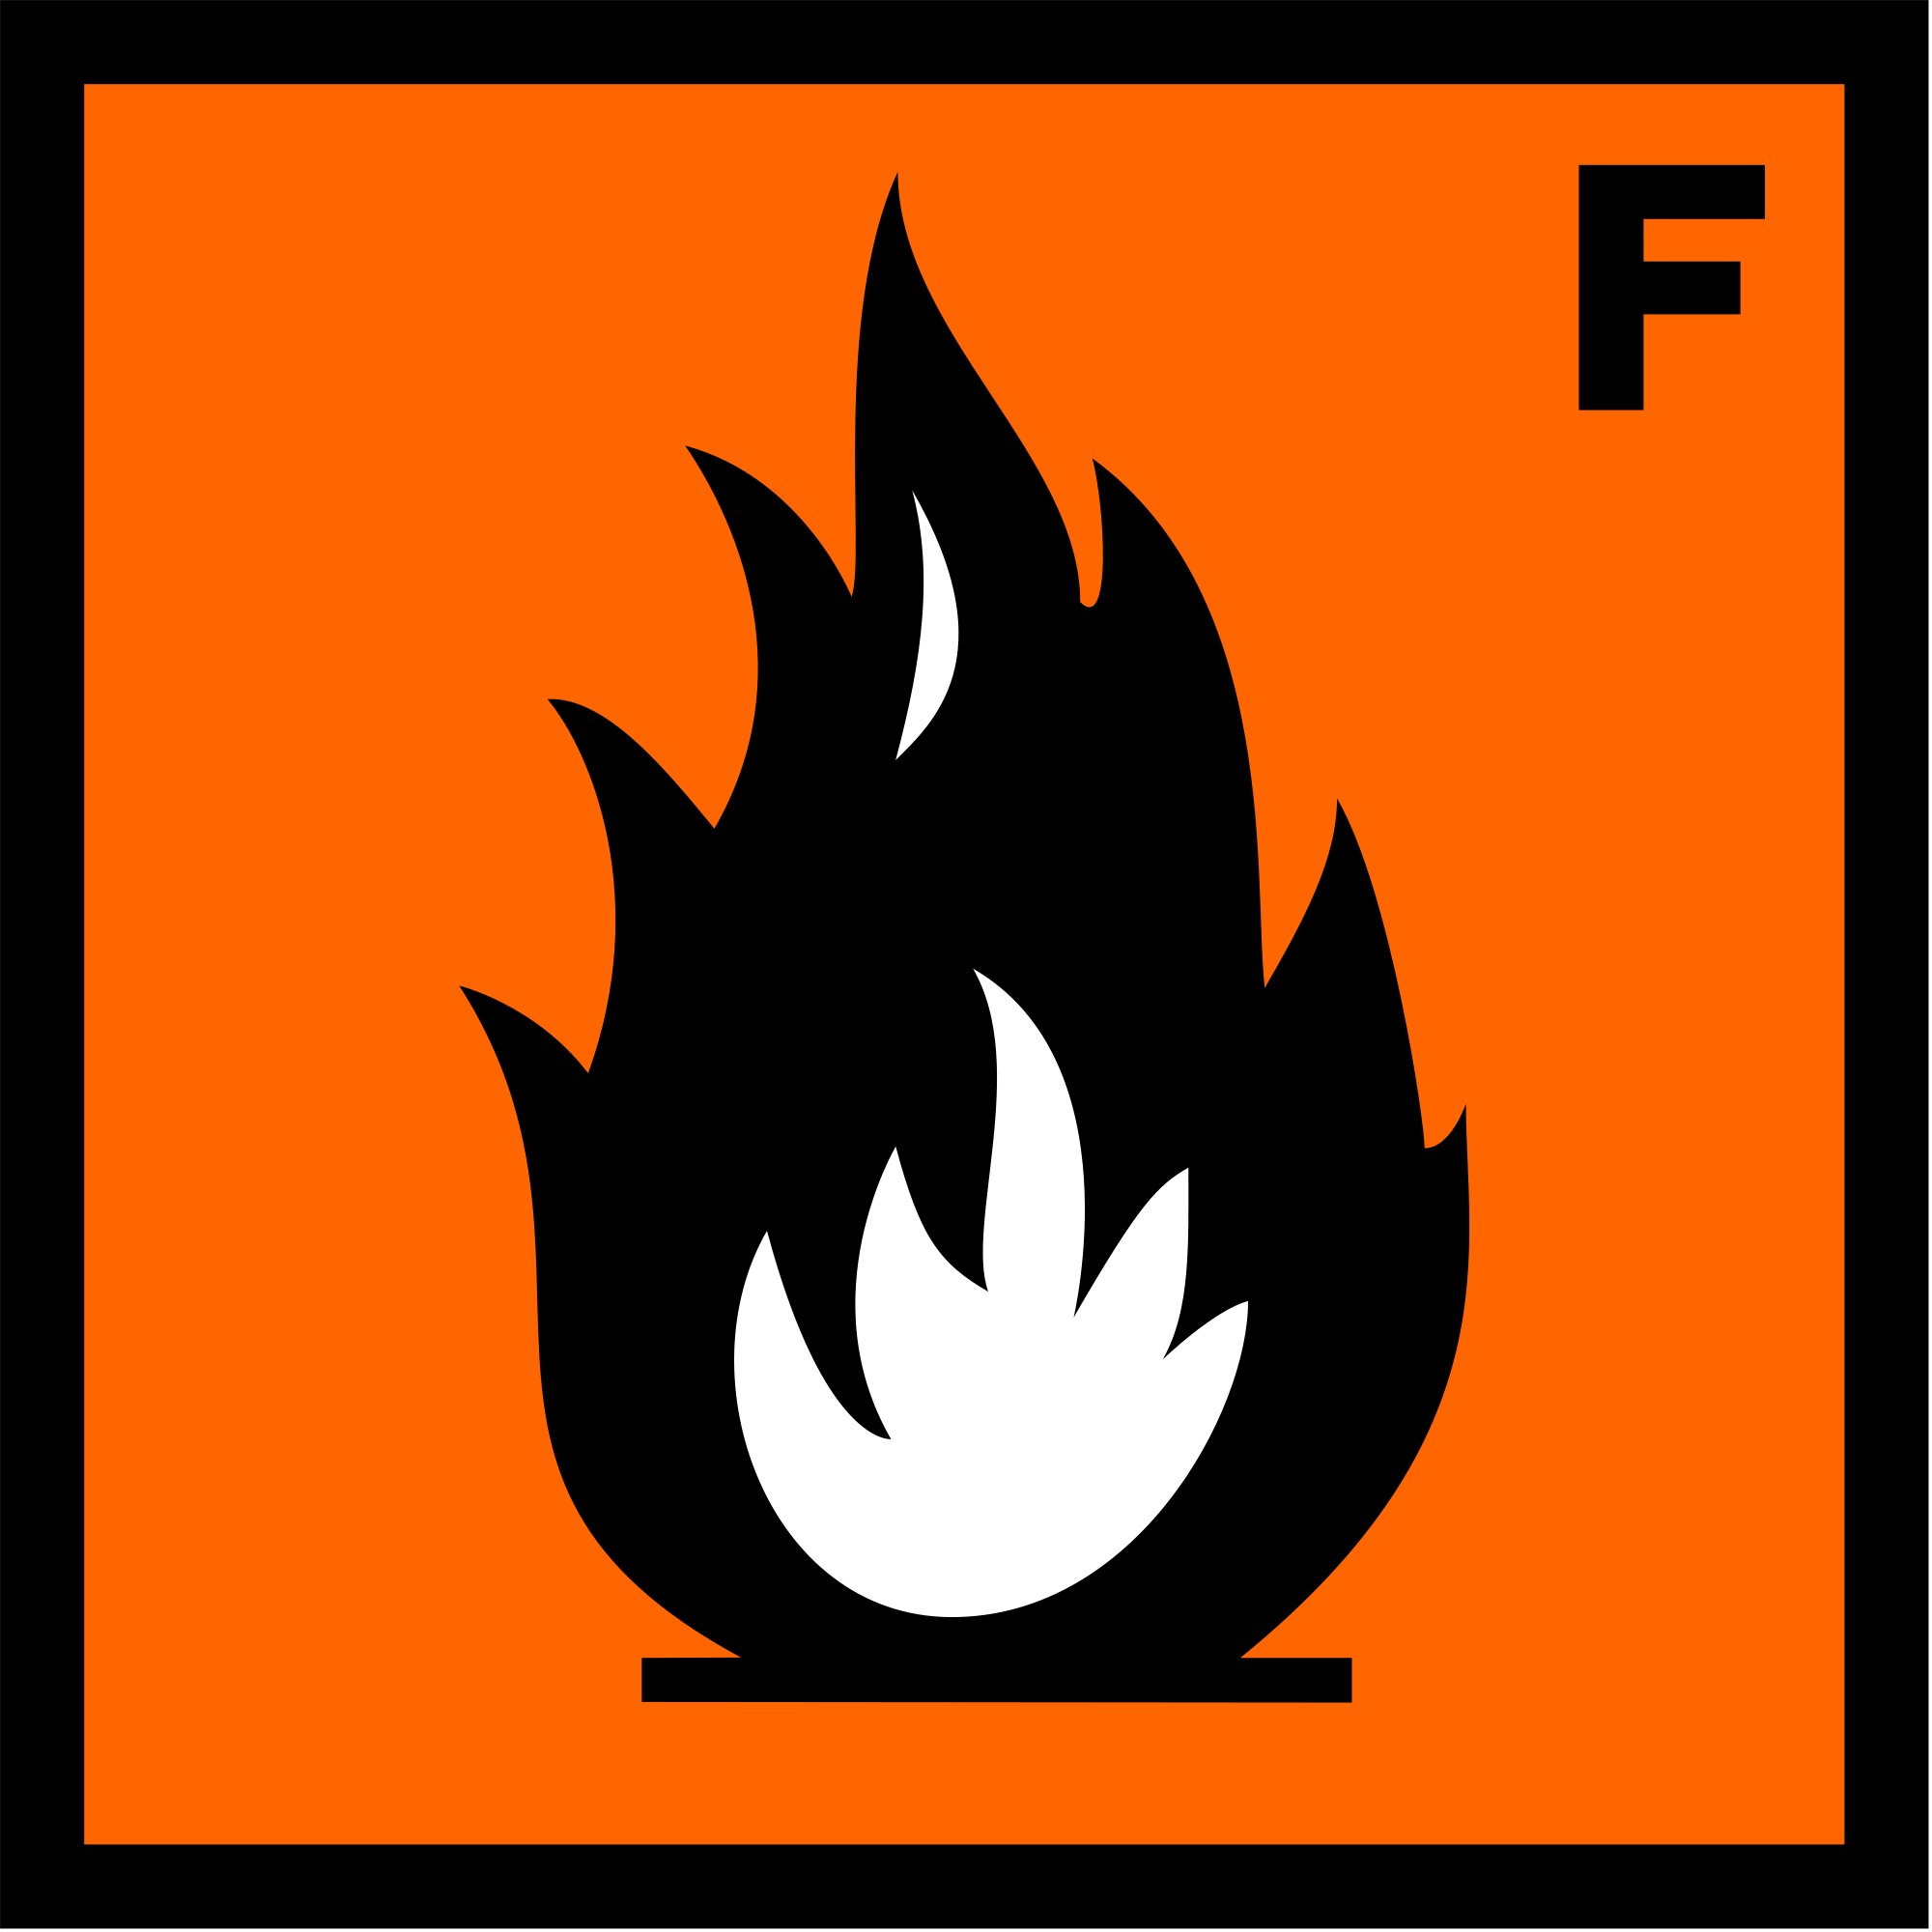 Highly Flammable Symbol.